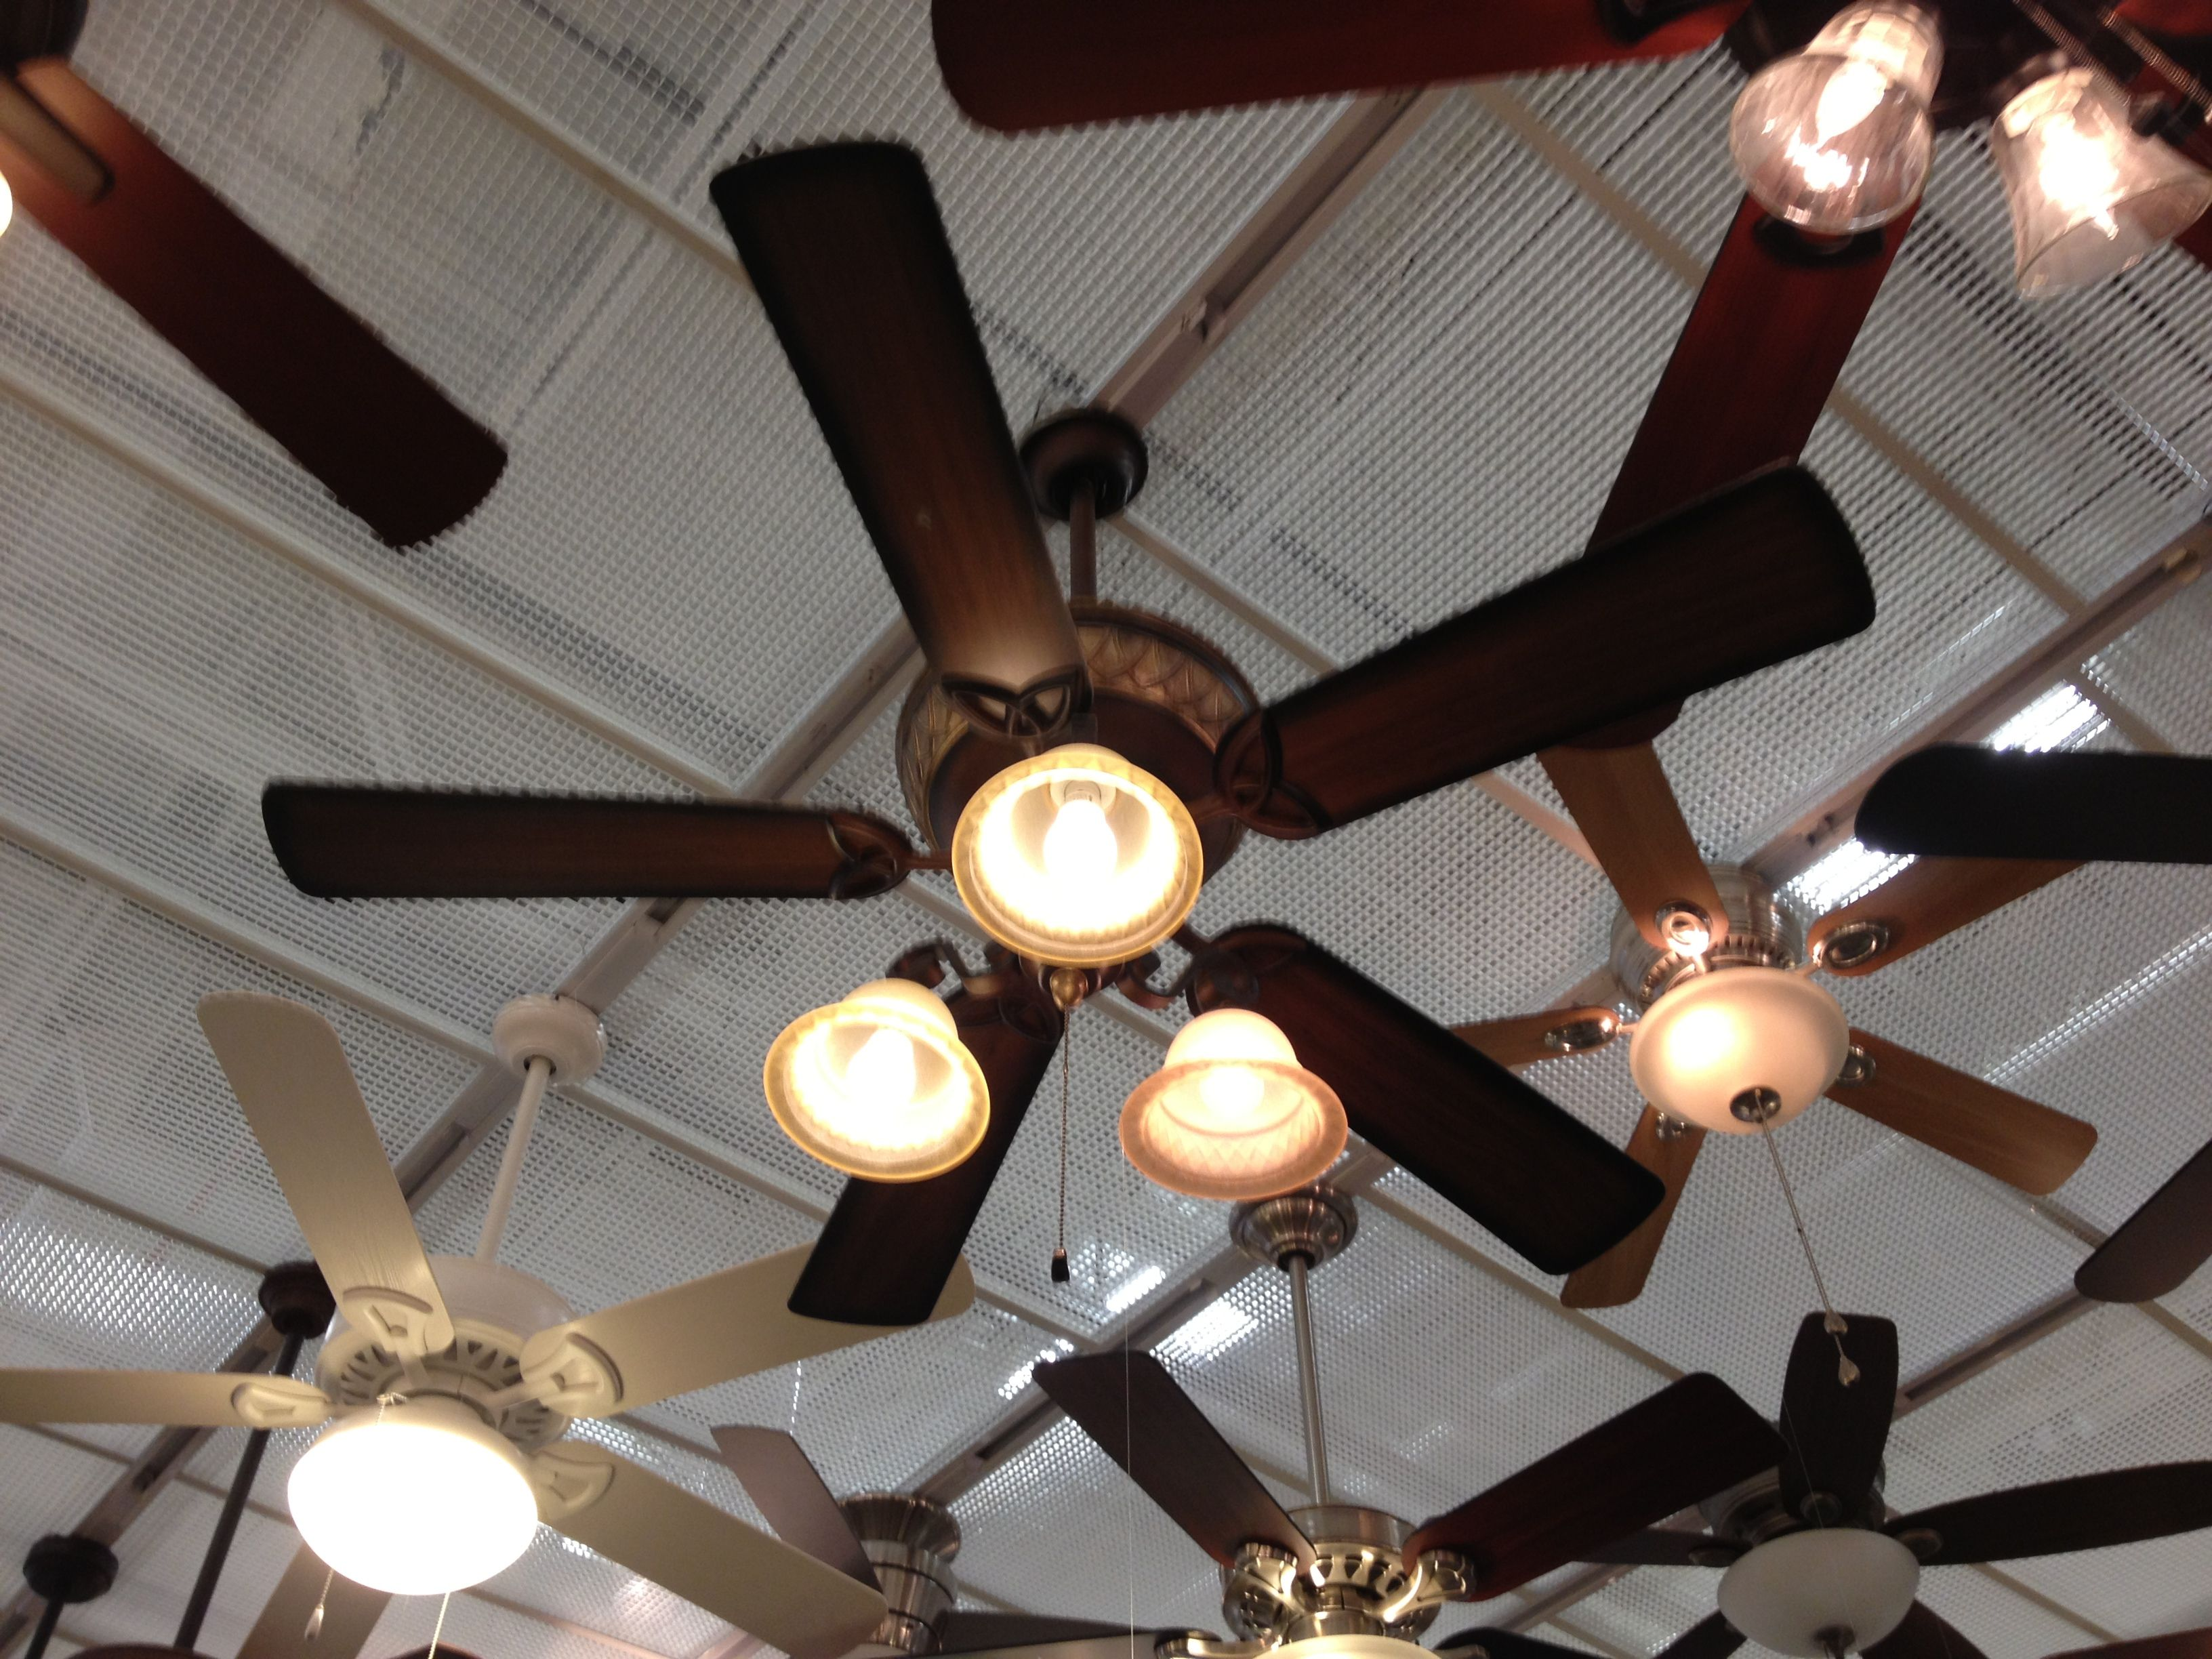 low antique wildlife pictures royal windmill ceiling inch the lamp pewter rustic astounding fan fans amusing oak with hunter nice light pany ceilings profile